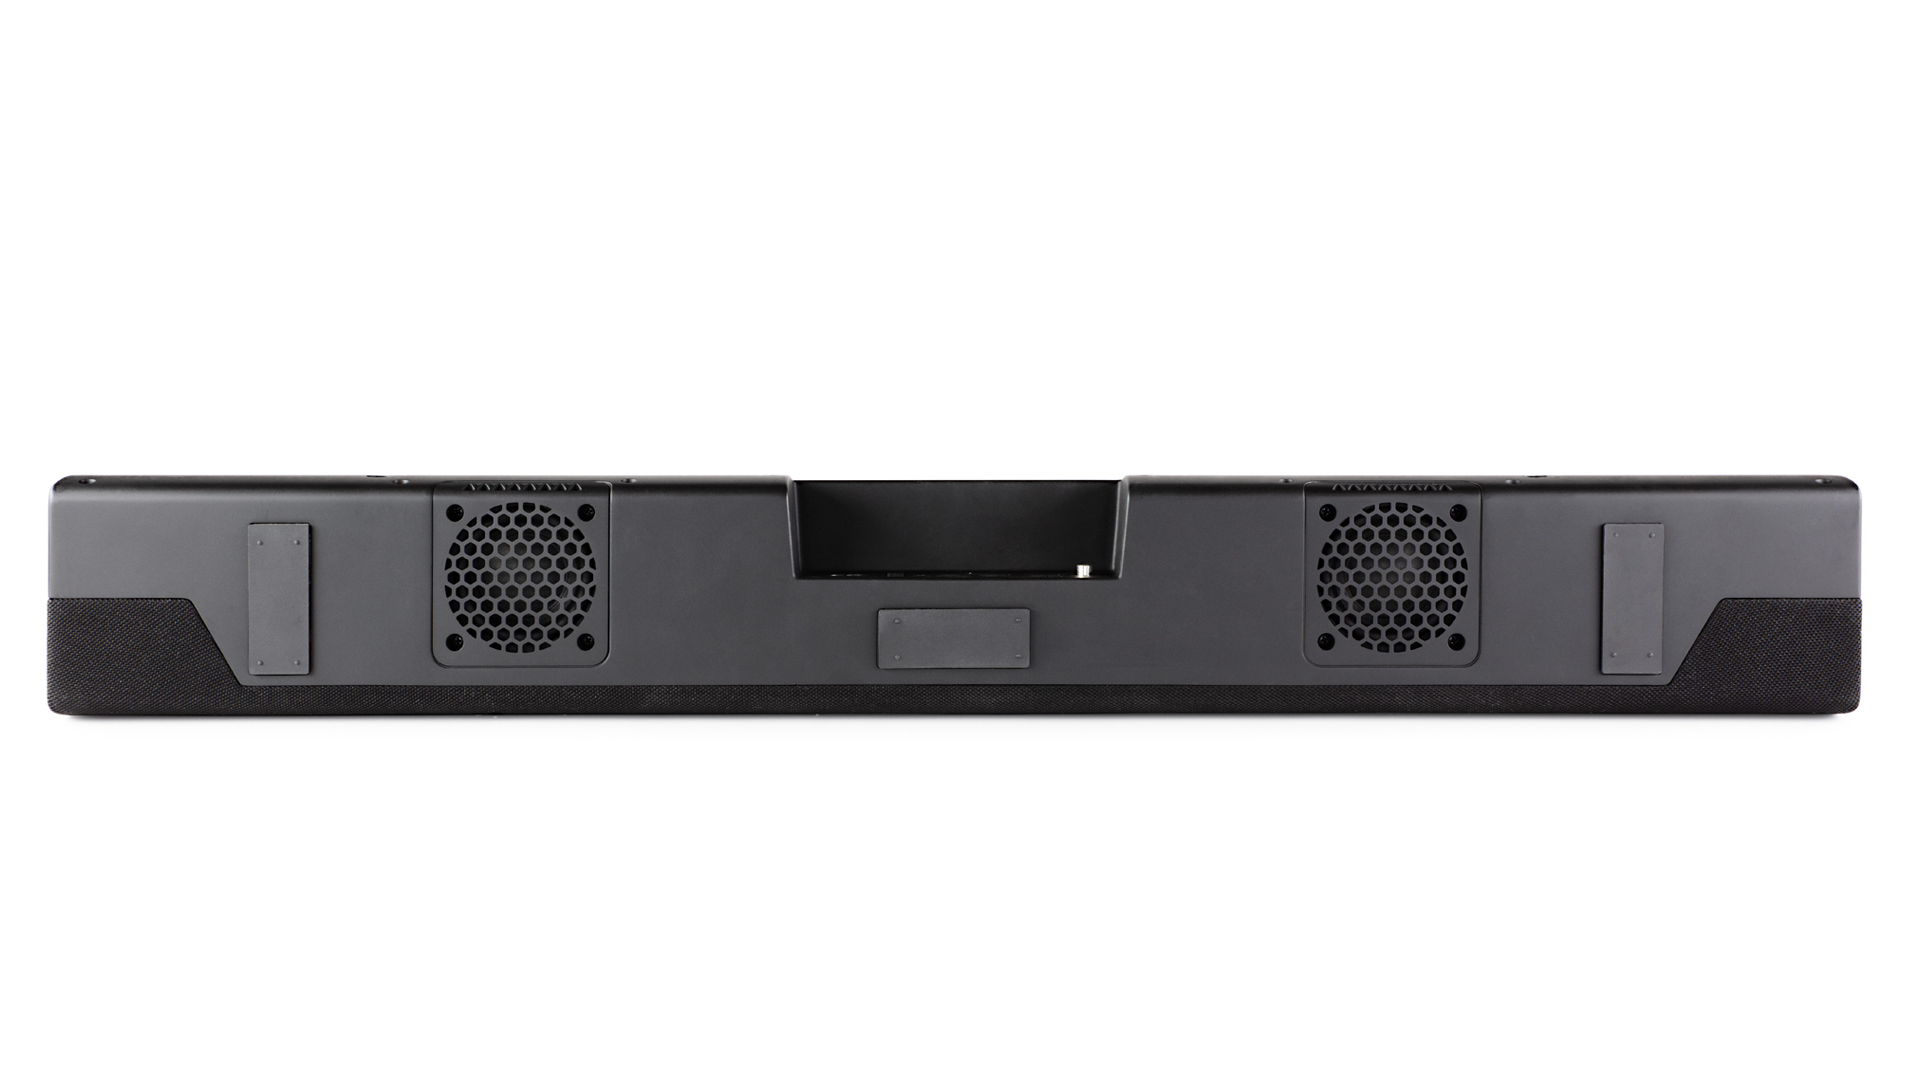 Stereo Magazine: With downfire subwoofer